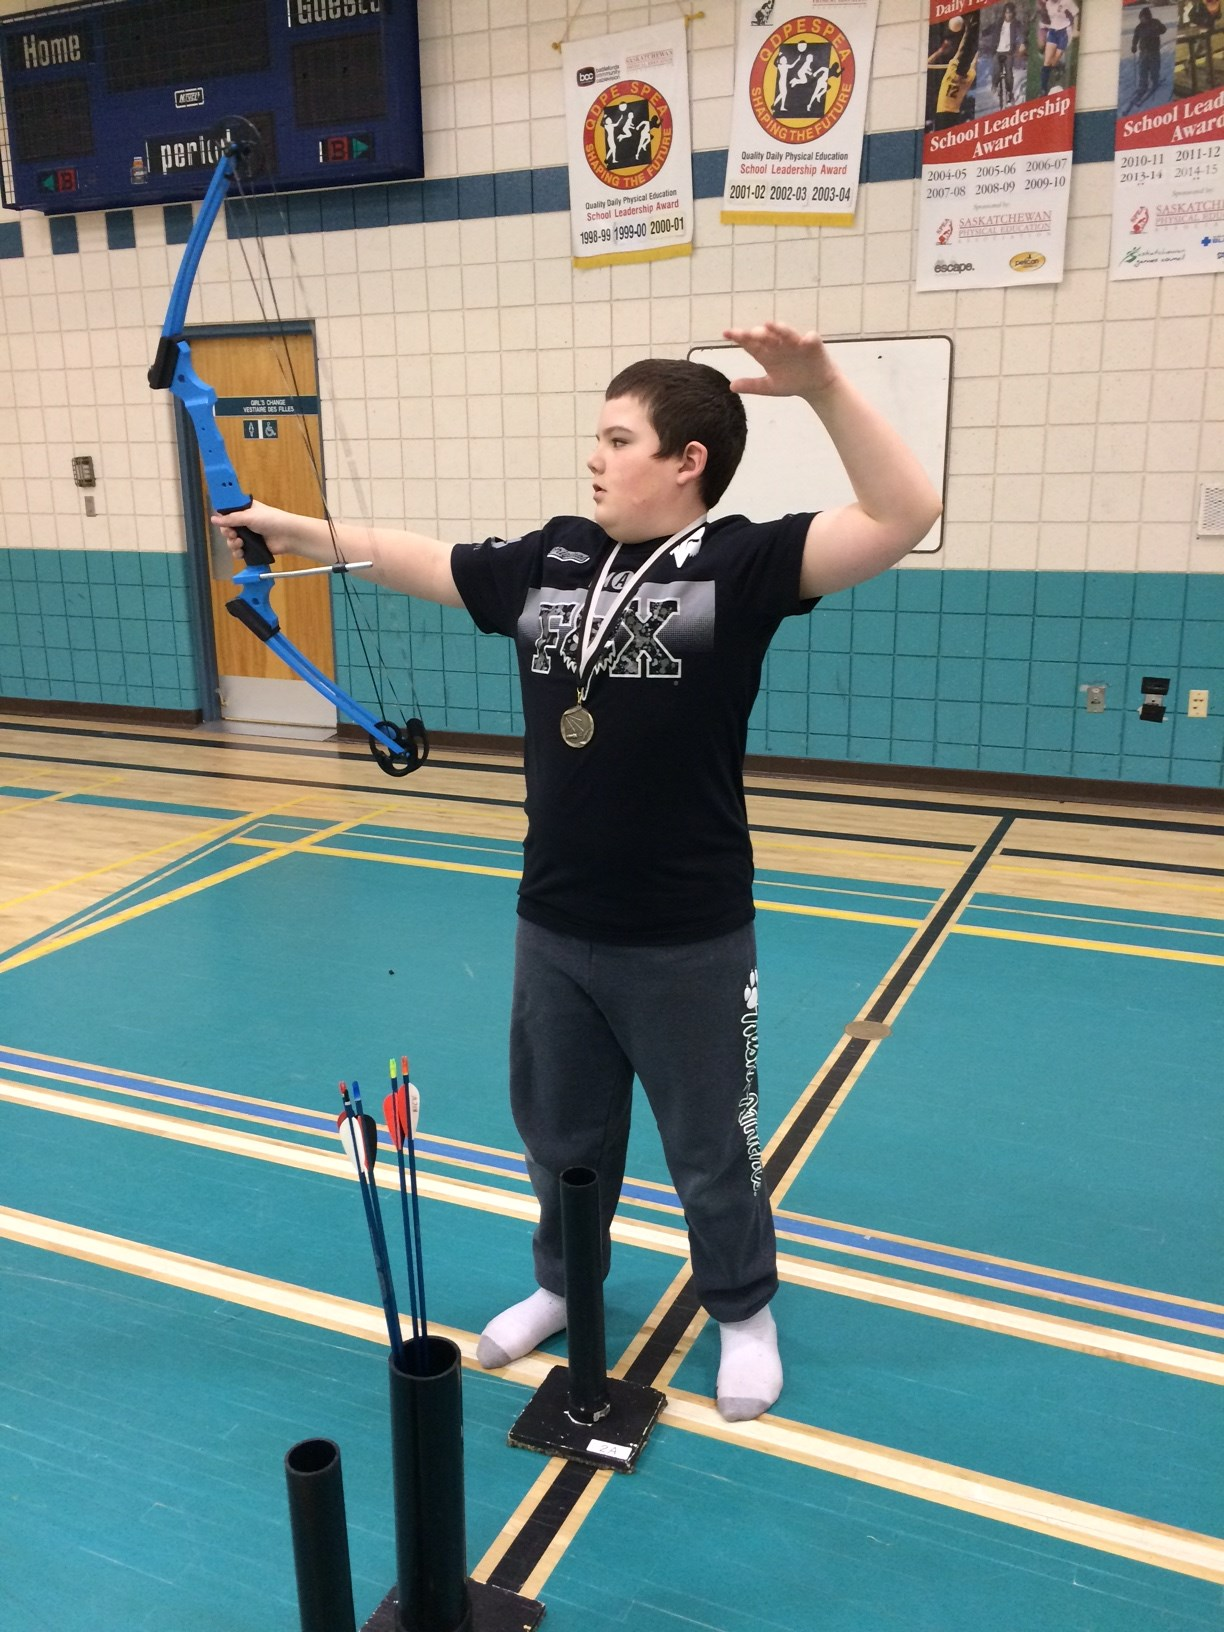 Student Clubs: Archery